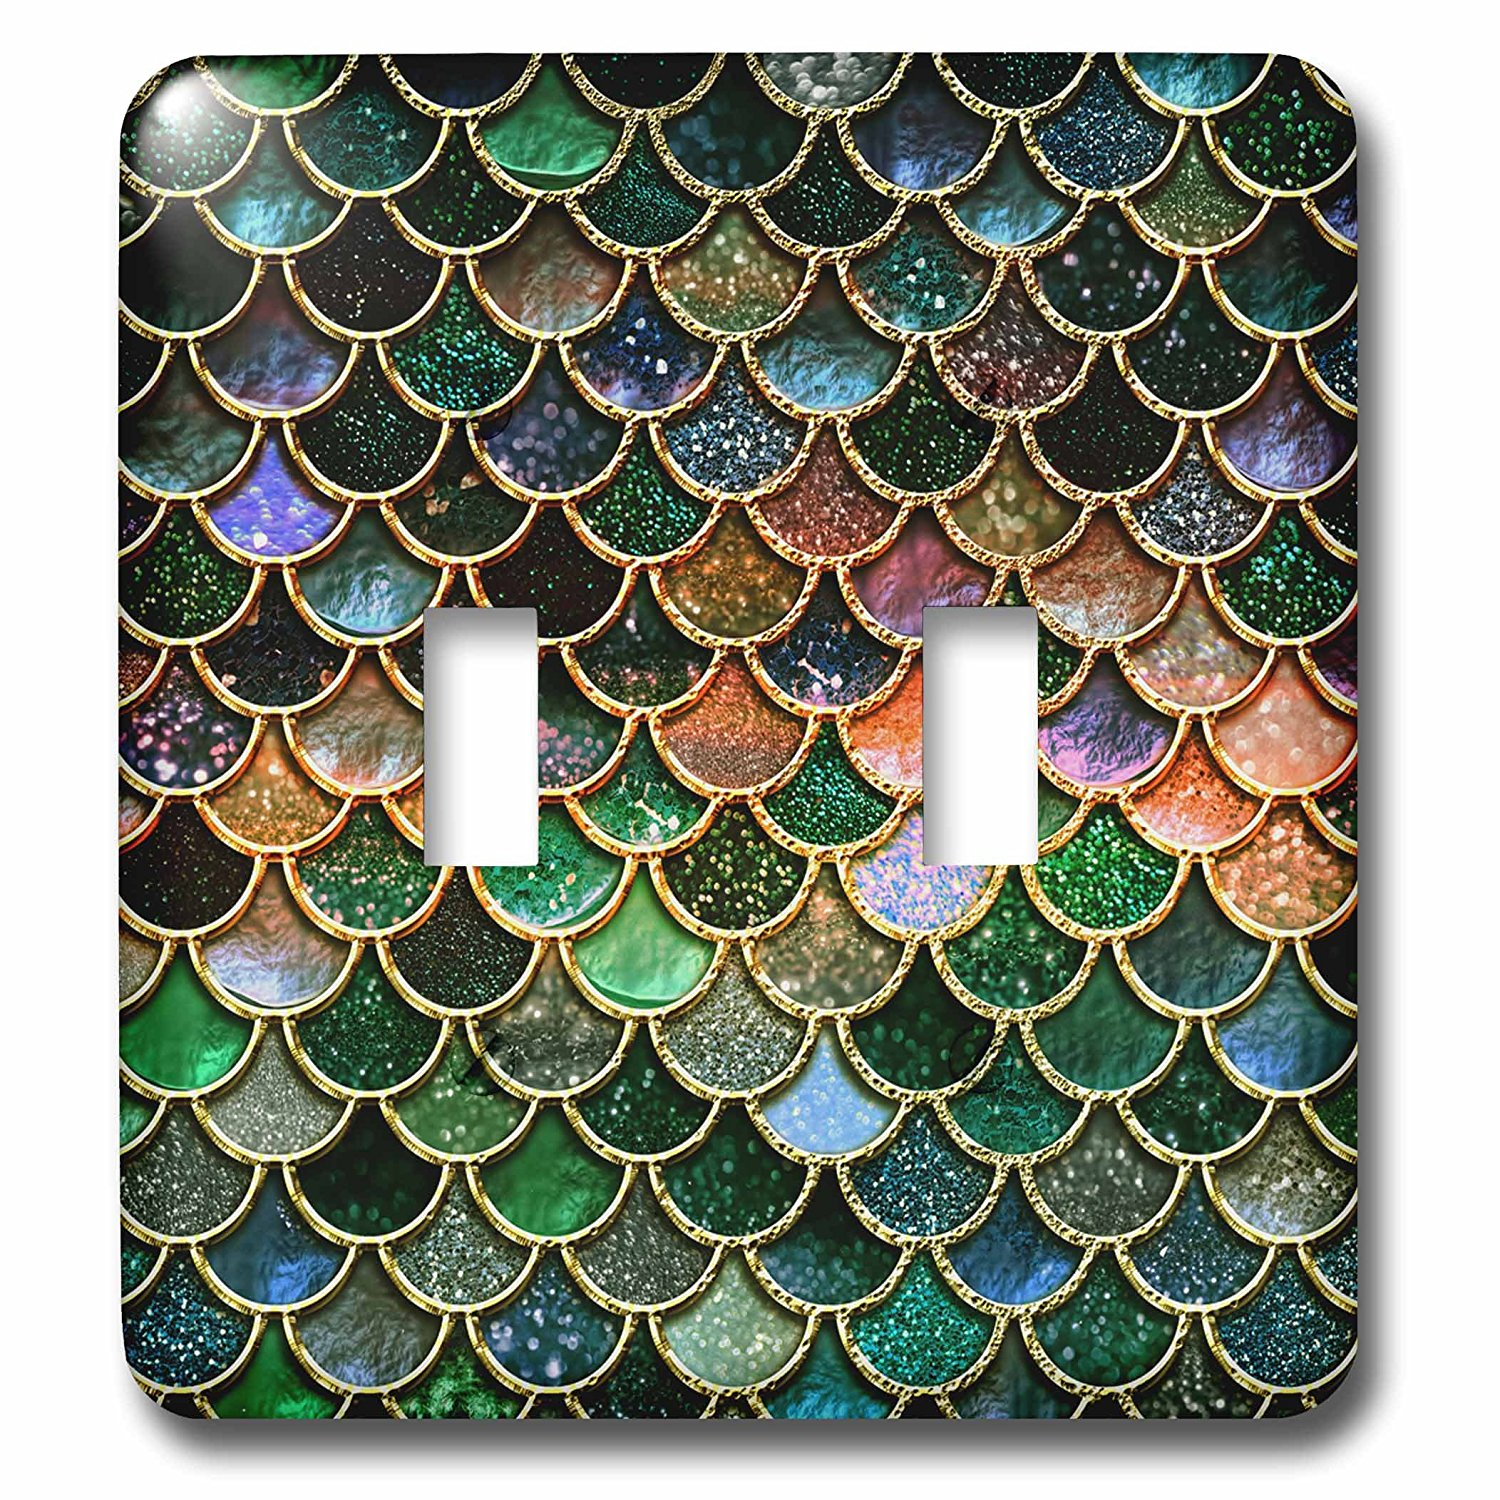 3dRose Uta Naumann Faux Glitter Pattern - Multicolor Girly Trend Pink Elegant Mermaid Scales Glitter - Light Switch Covers - double toggle switch (lsp_272868_2)